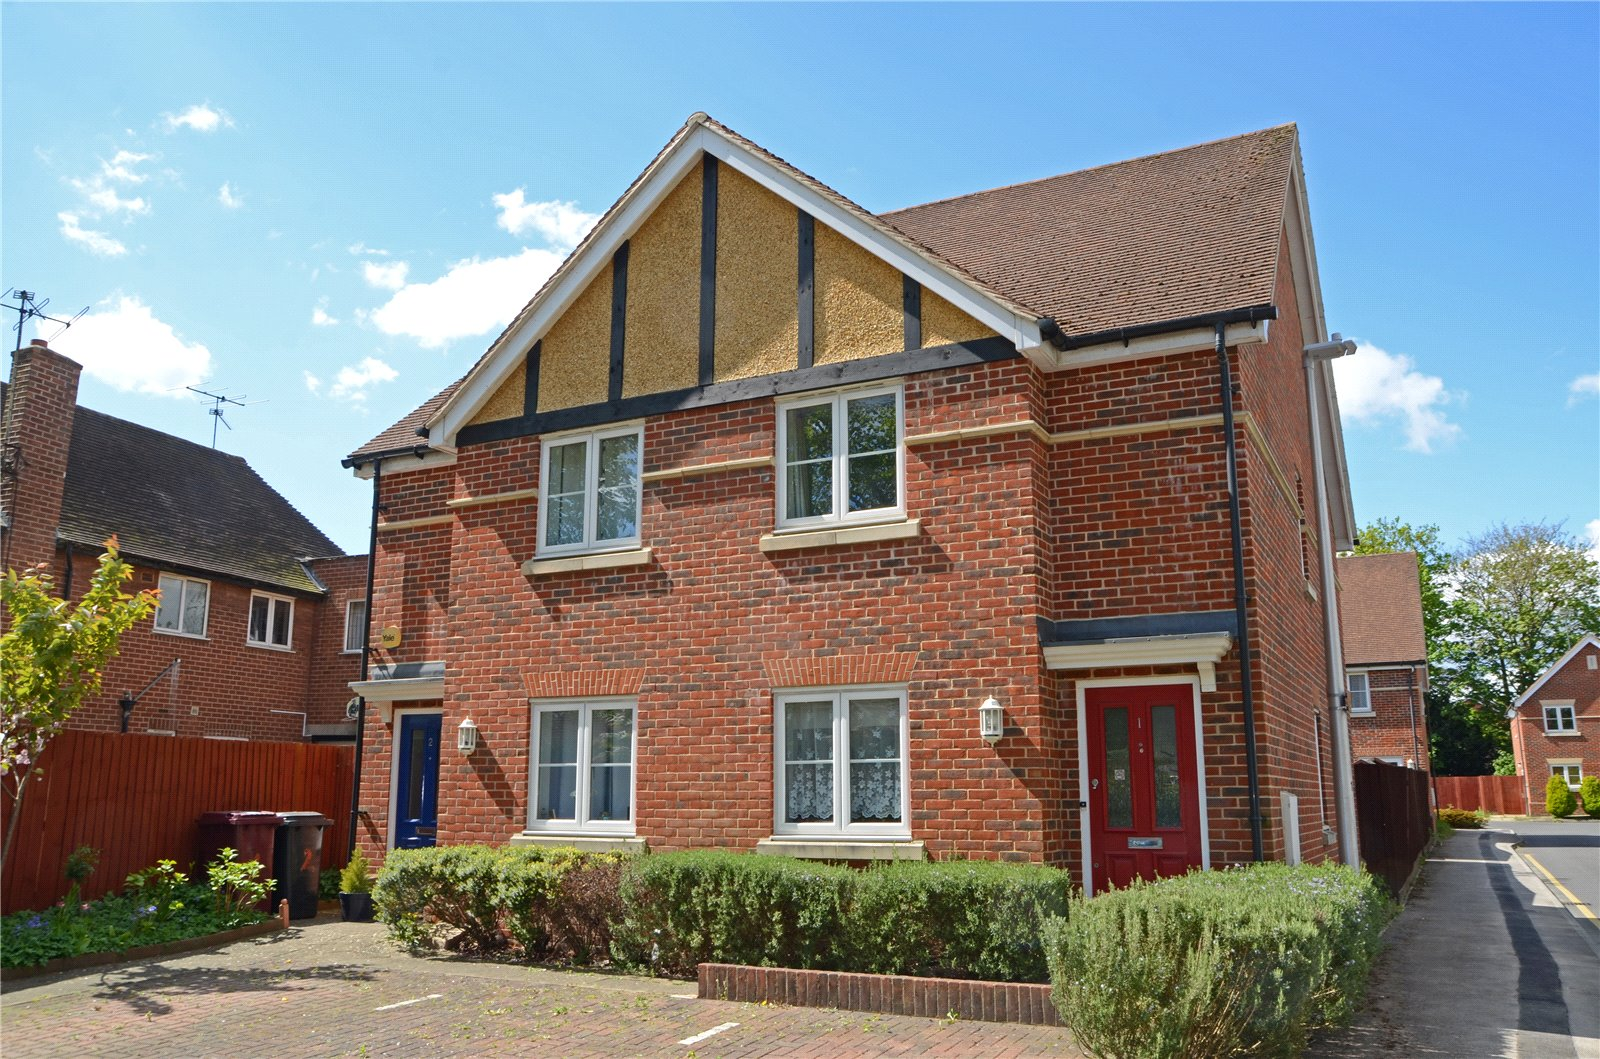 Parkers tilehurst 2 bedroom house to rent in hawley mews - 1 bedroom house to rent in reading ...